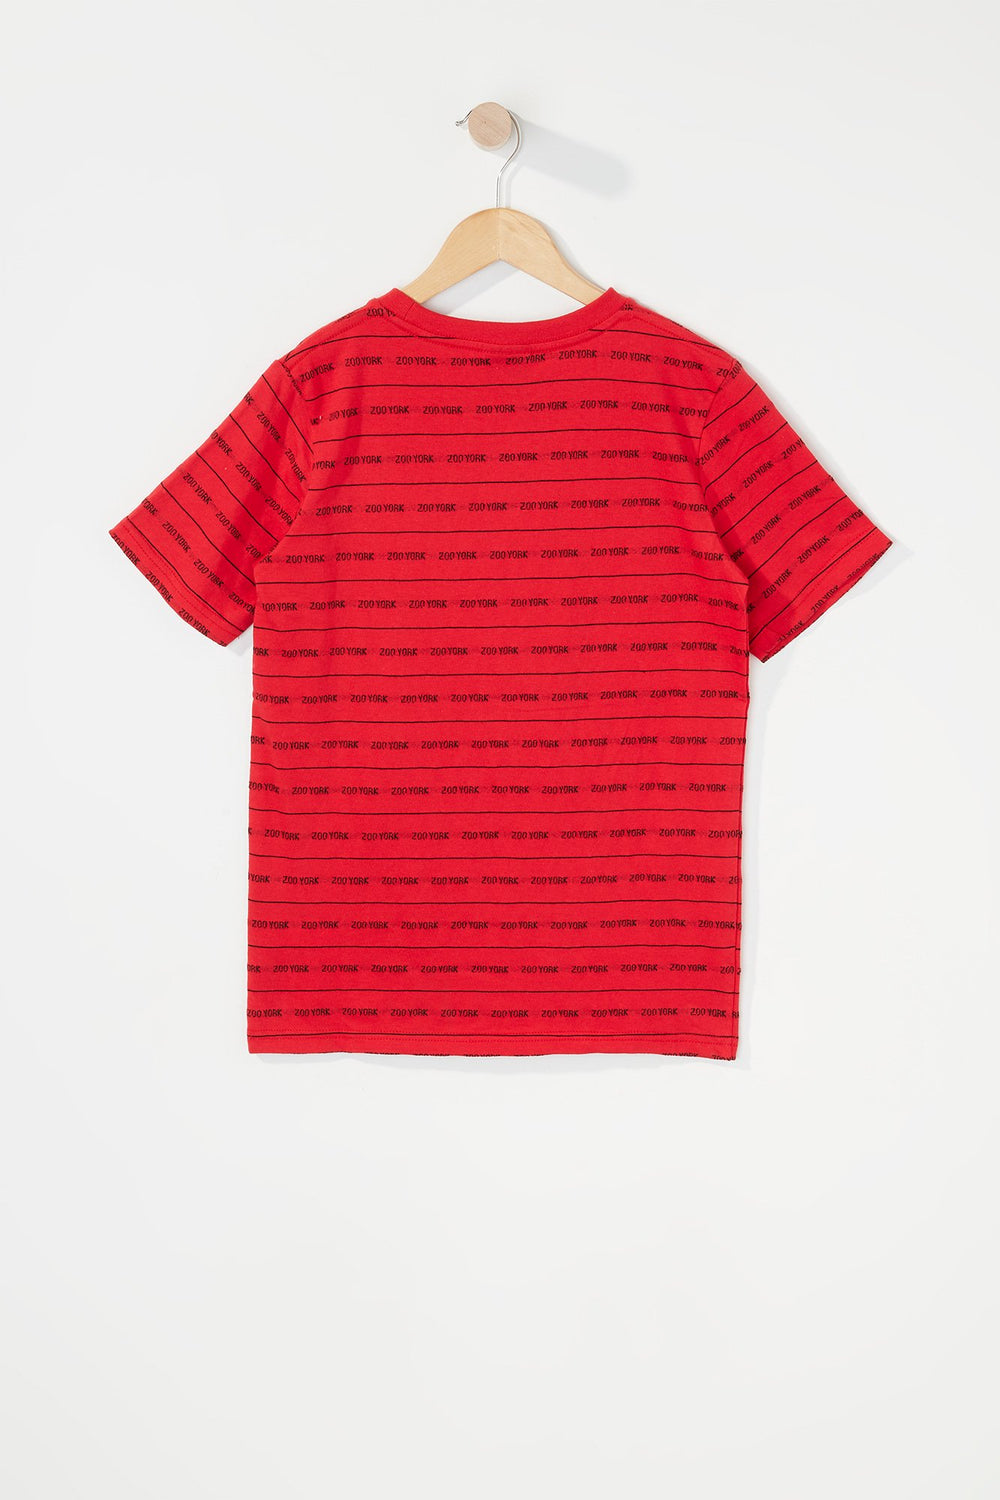 Zoo York Boys Jacquard Striped T-Shirt Red